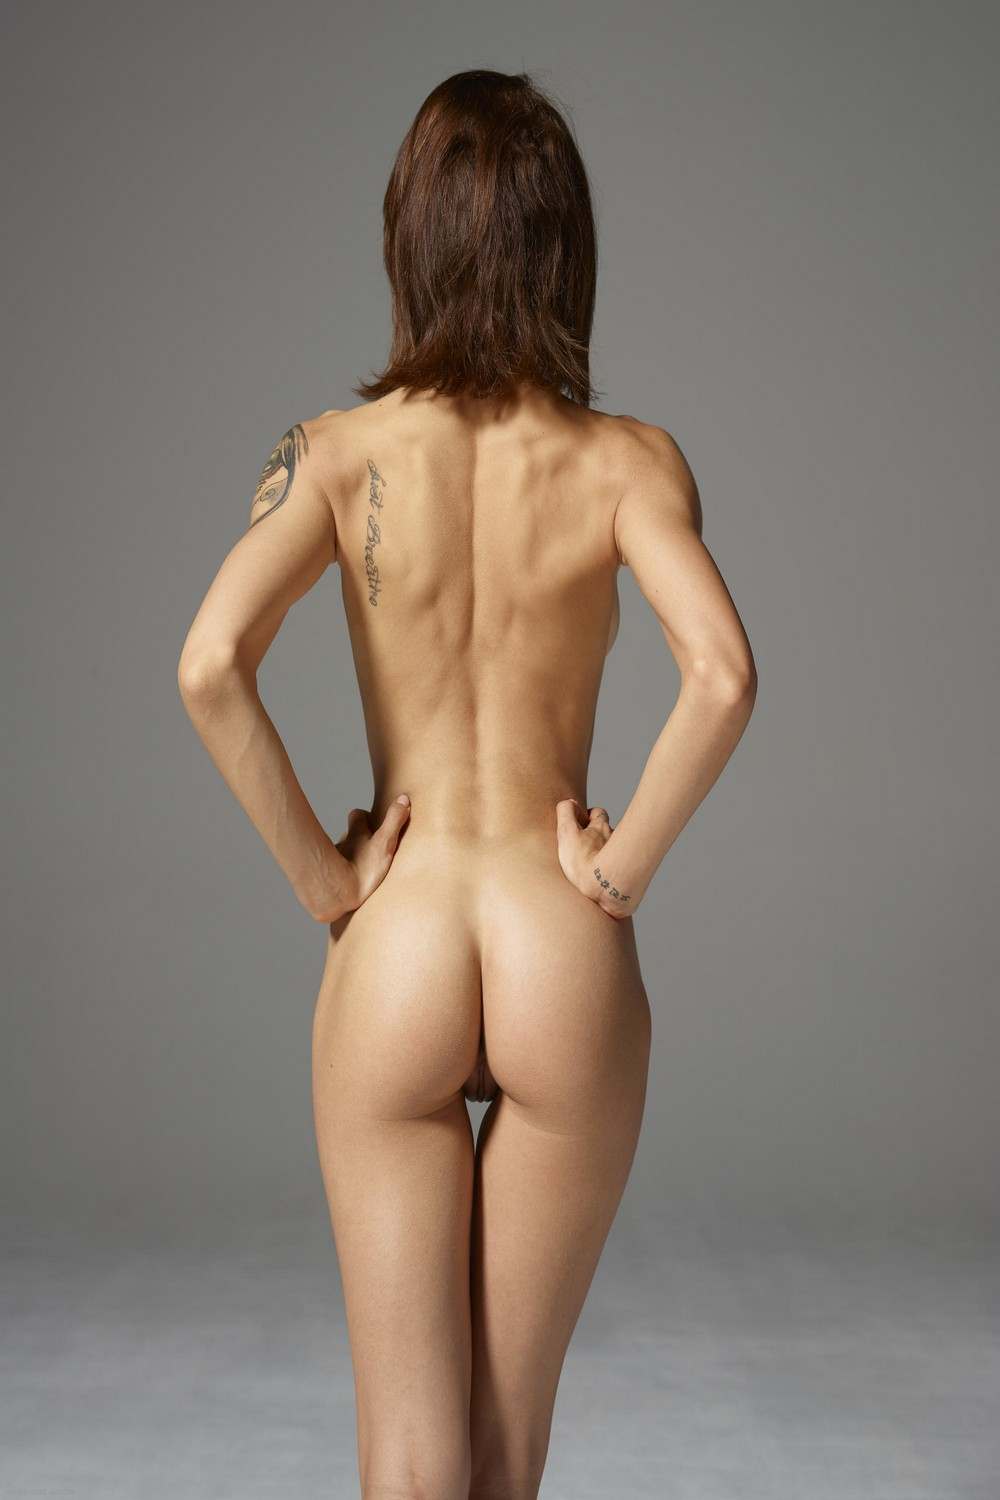 artistic muscle nude